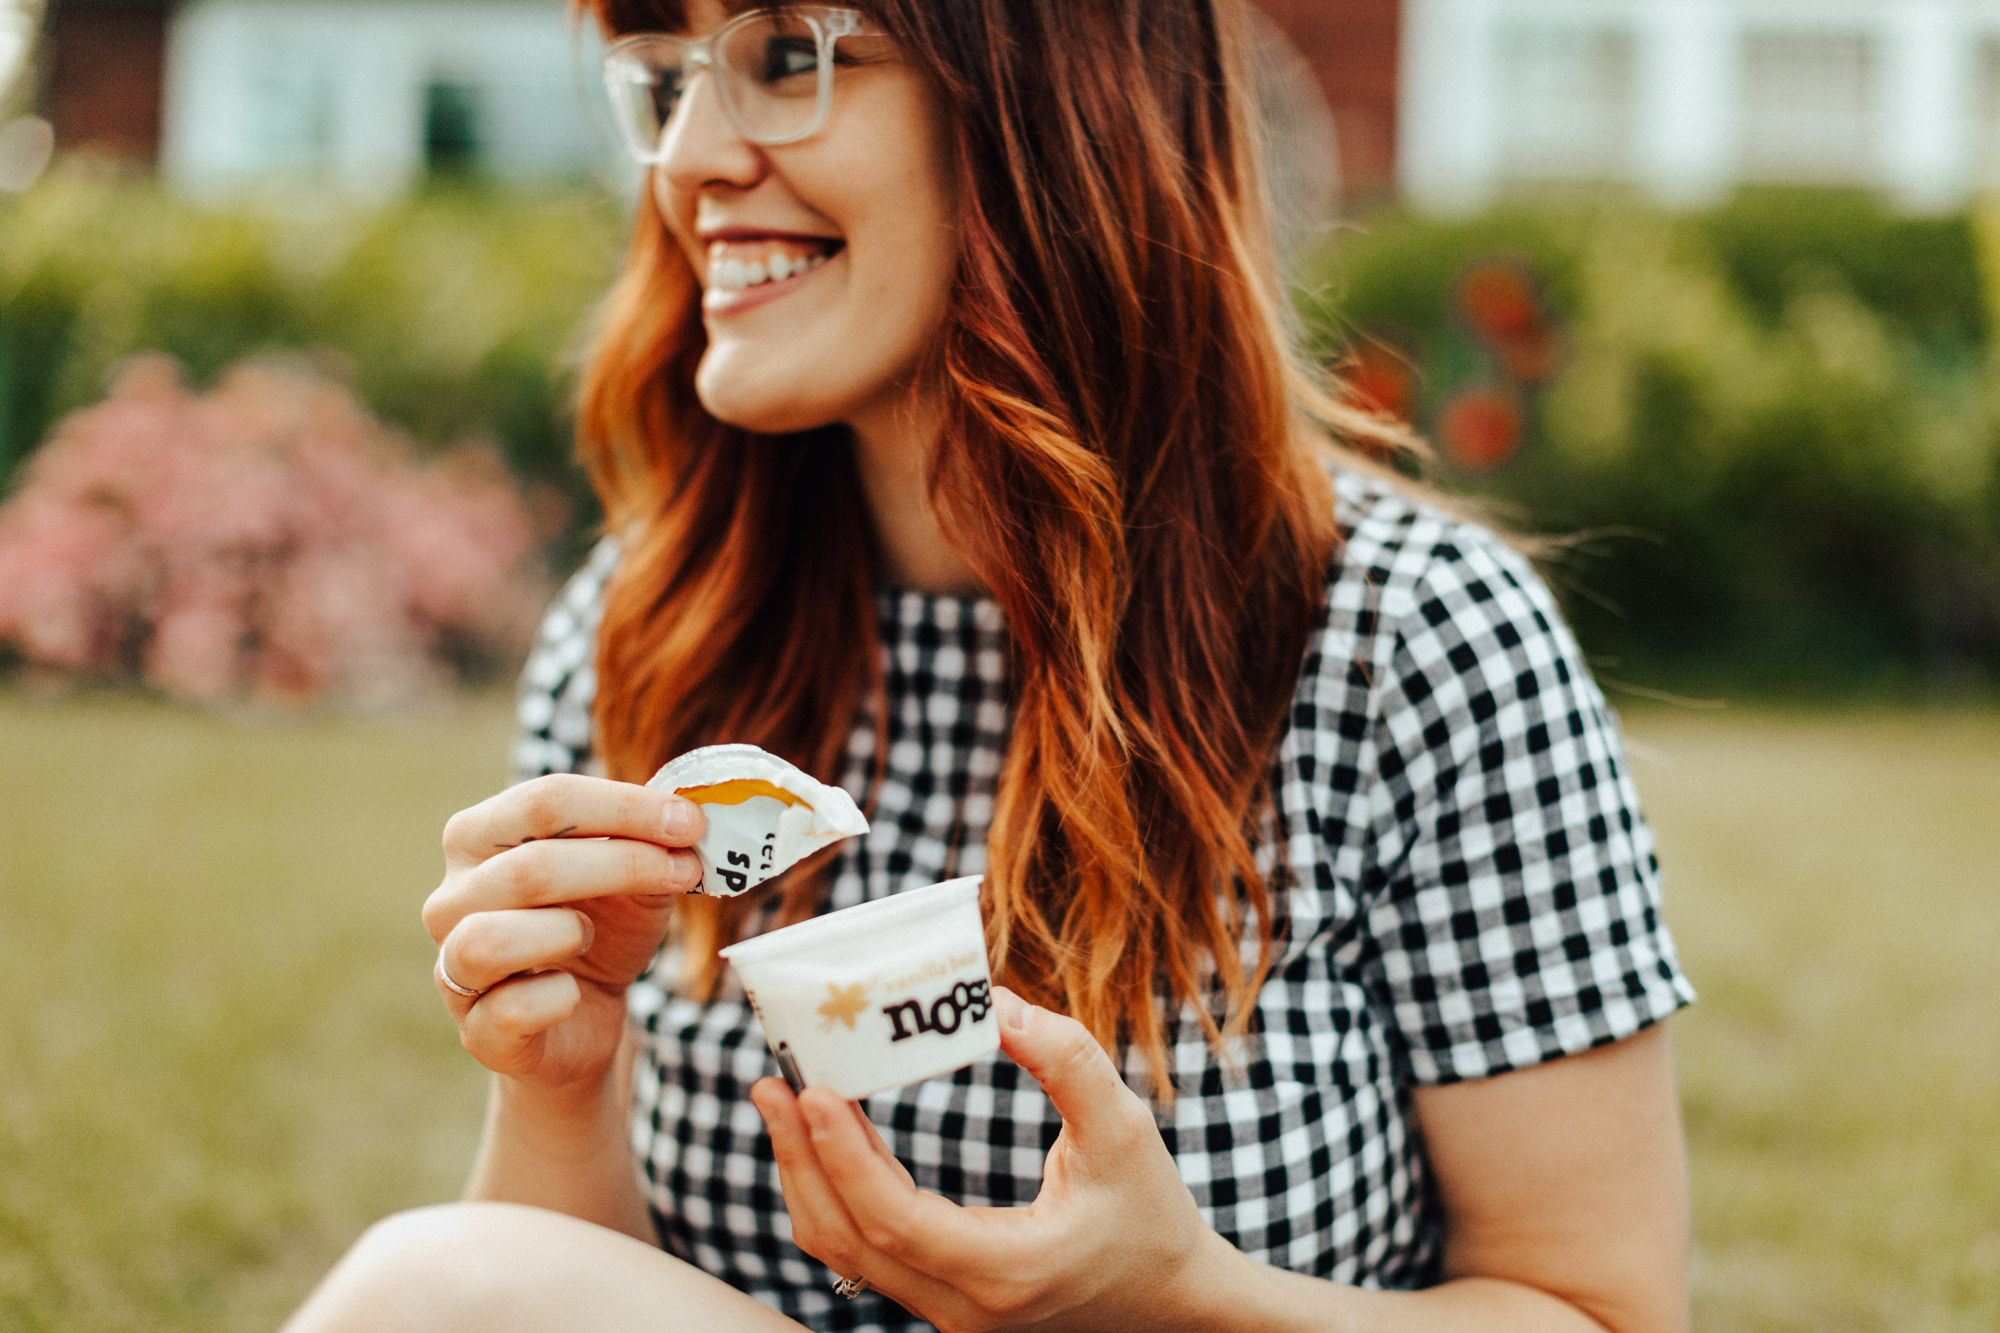 Woman smiling holding a cup of Noosa yoghurt and using the lid as a spoon